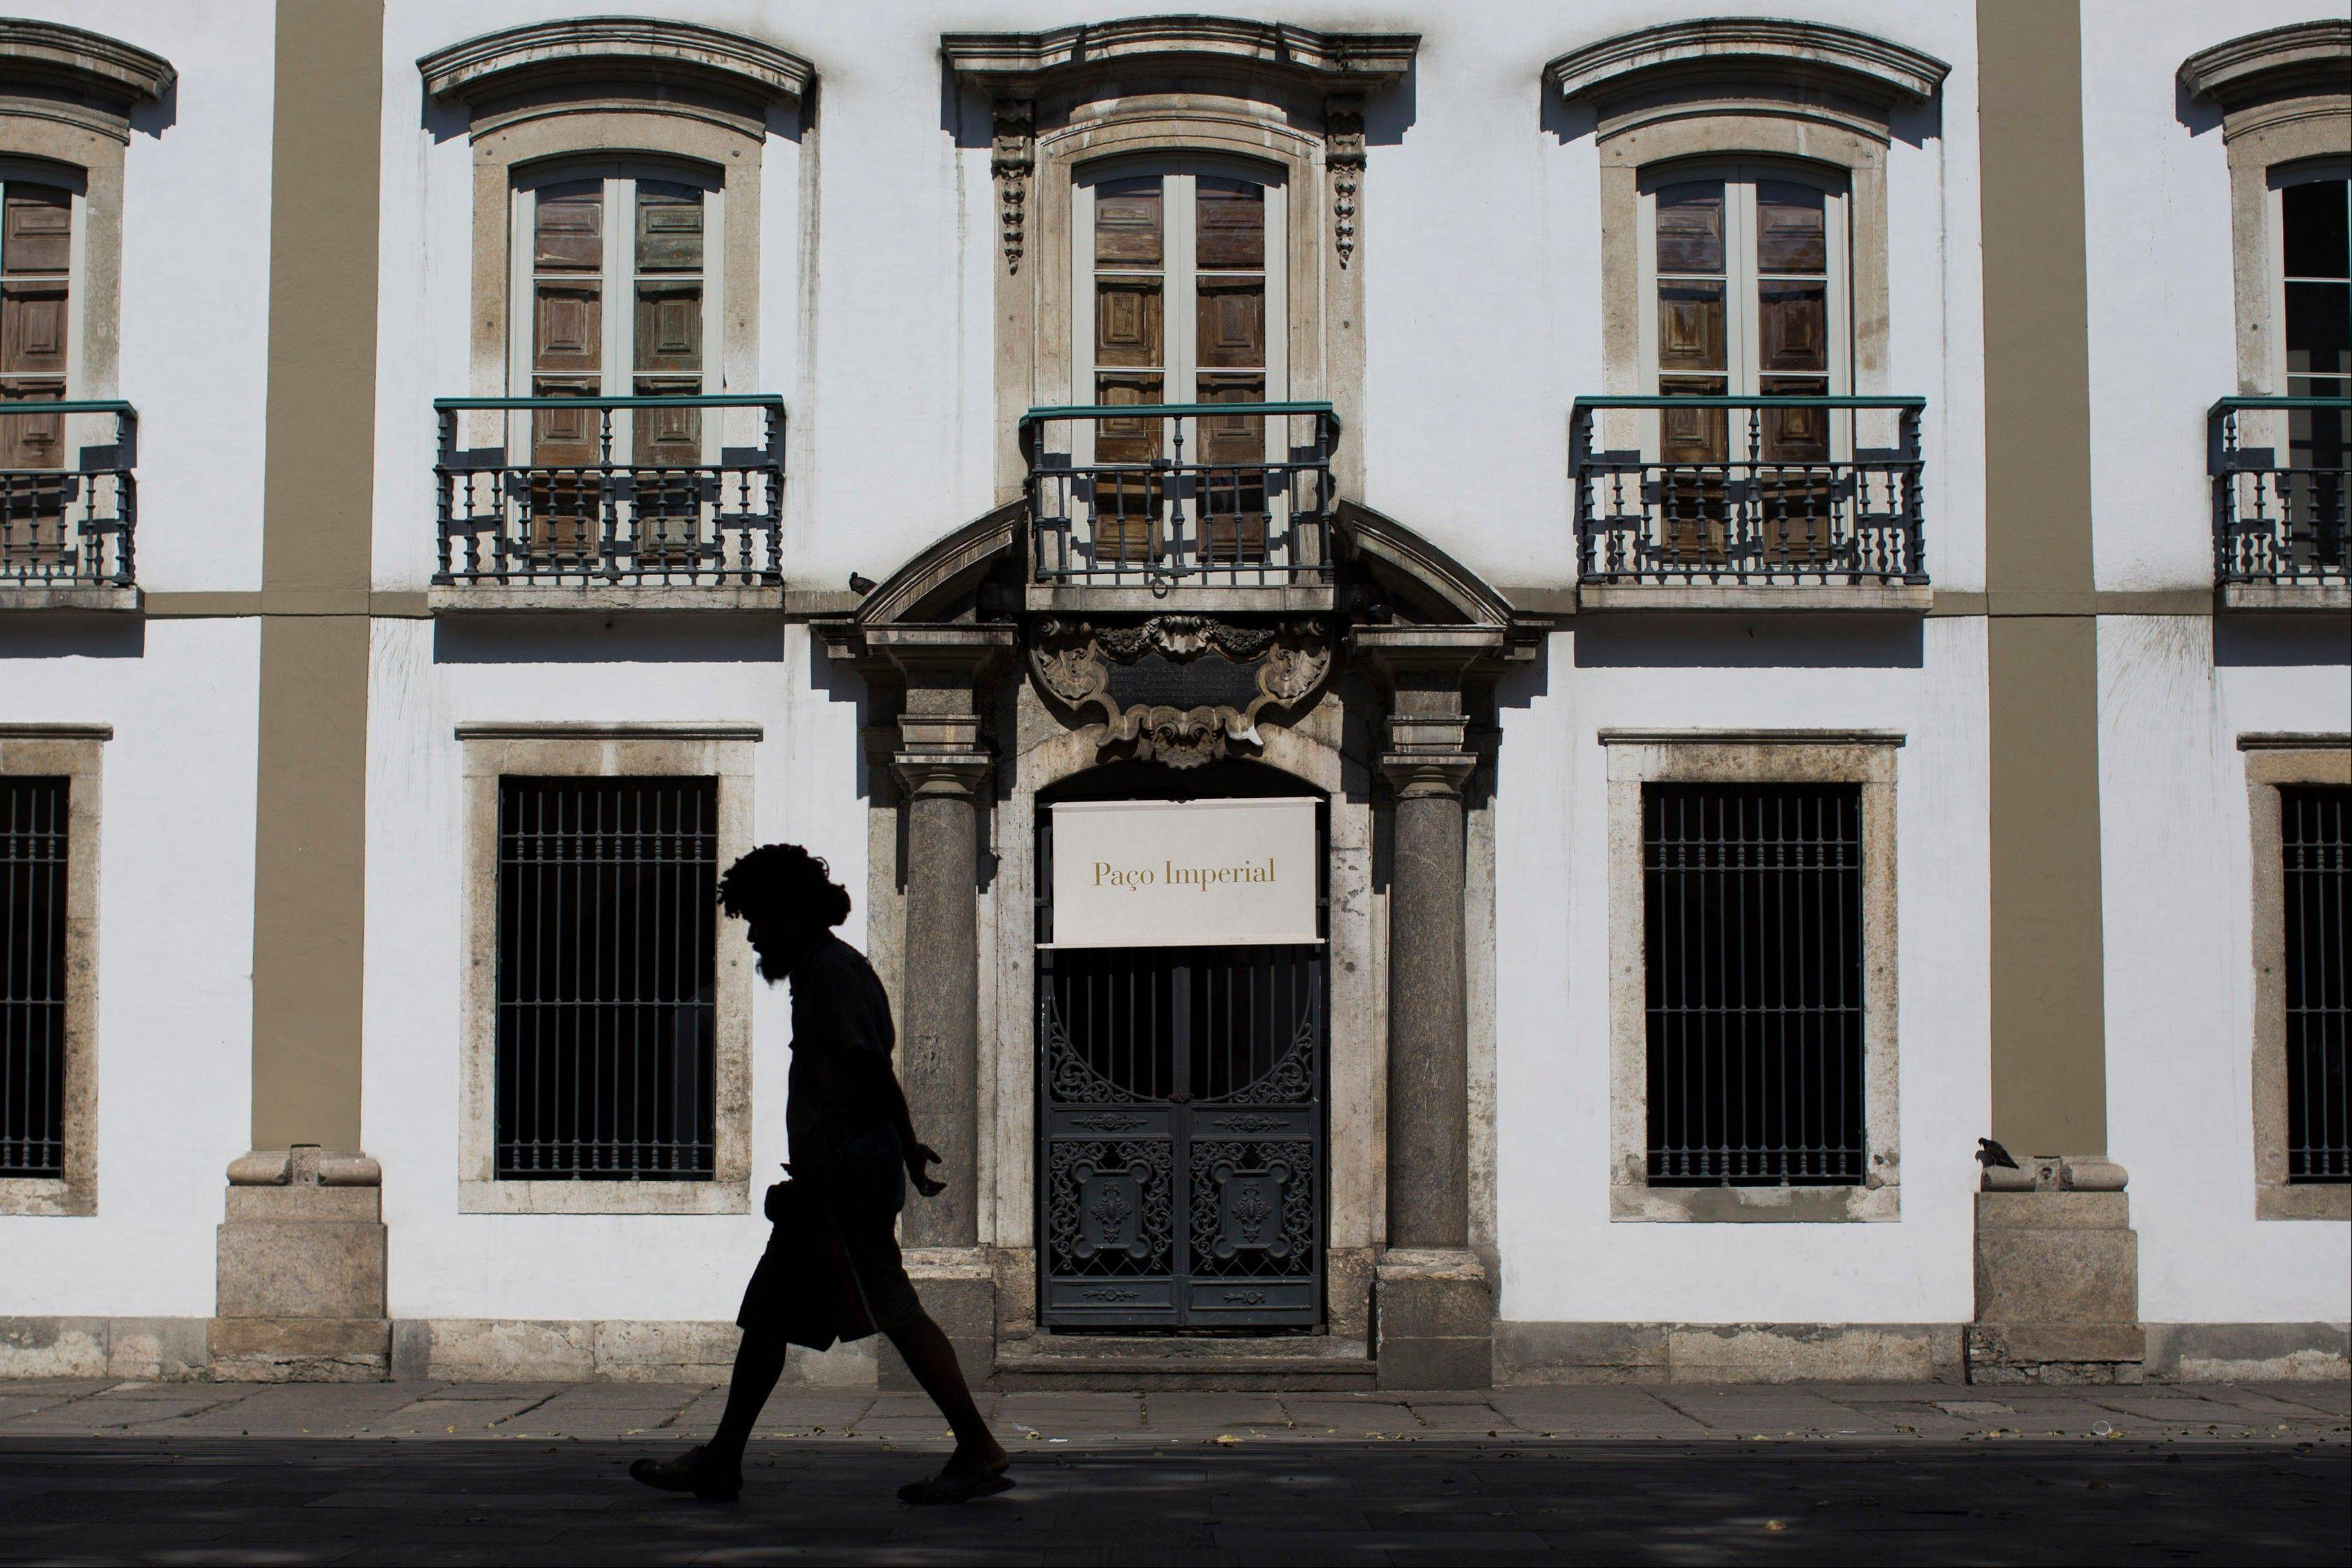 A man walks past the Paco Imperial or Royal Palace in Rio de Janeiro, the home where the Portuguese royal family settled when they fled Europe just ahead of Napoleon�s advancing troops.